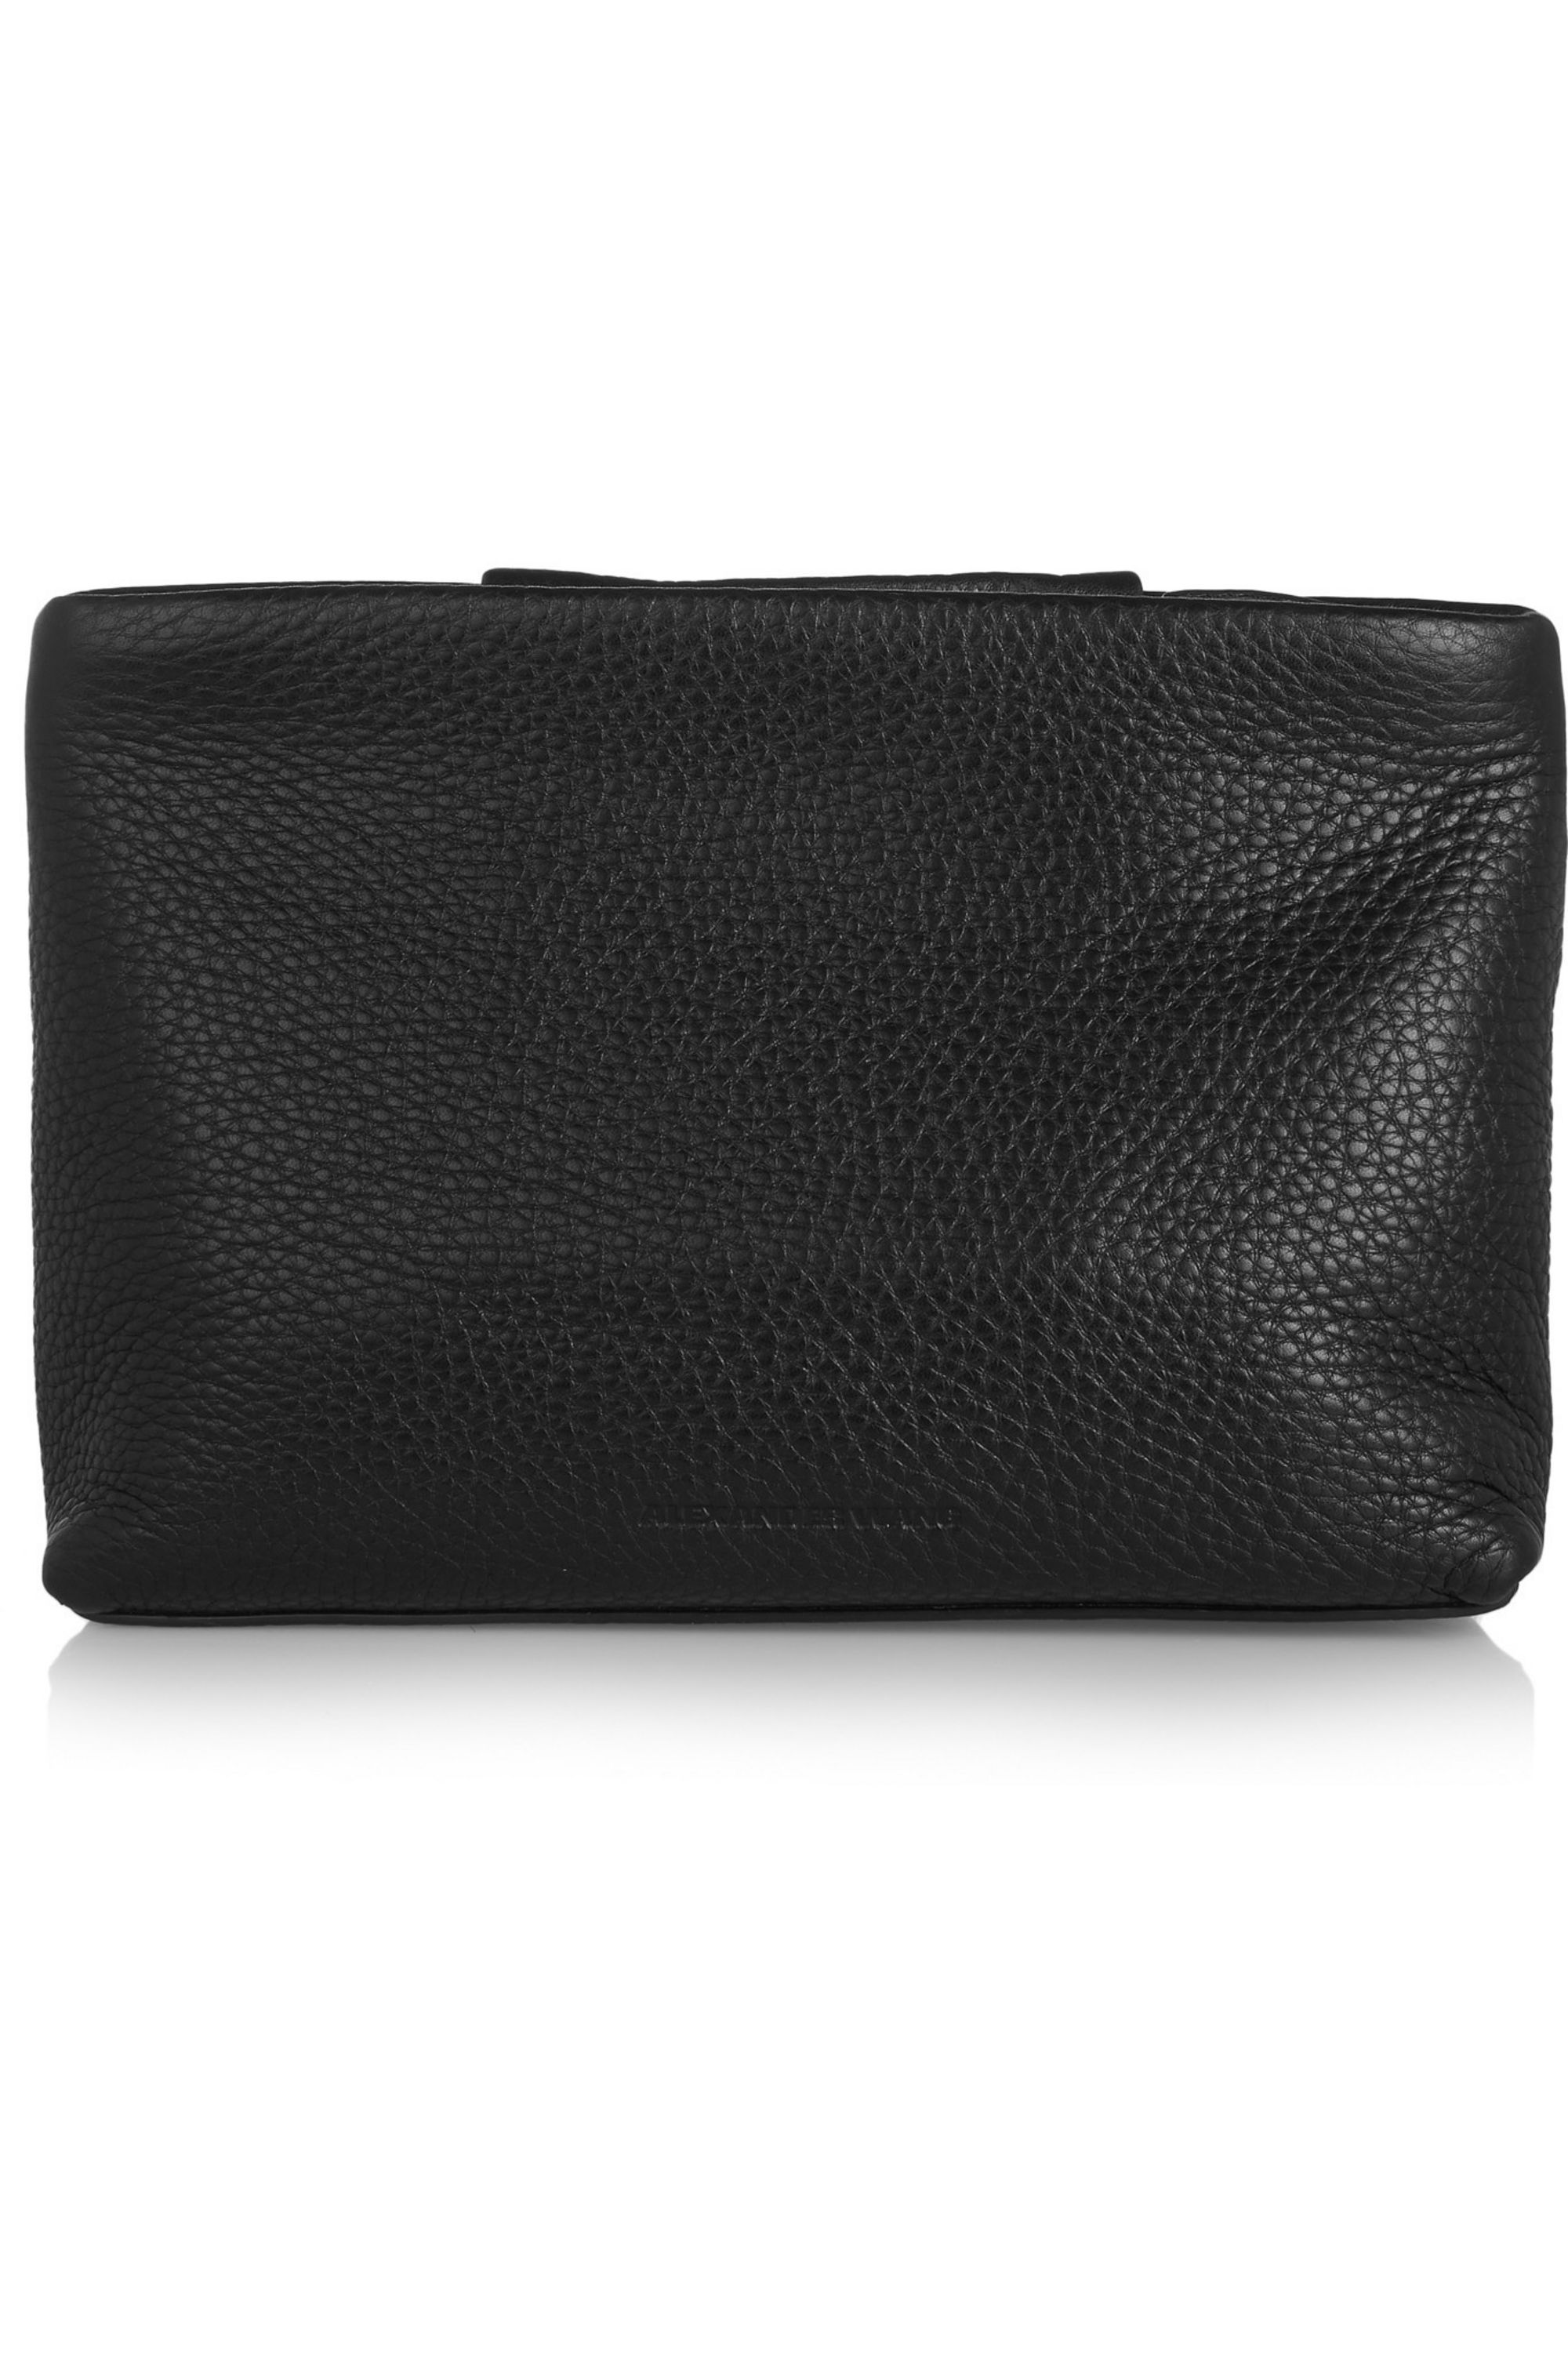 Alexander Wang Dumbo textured-leather clutch